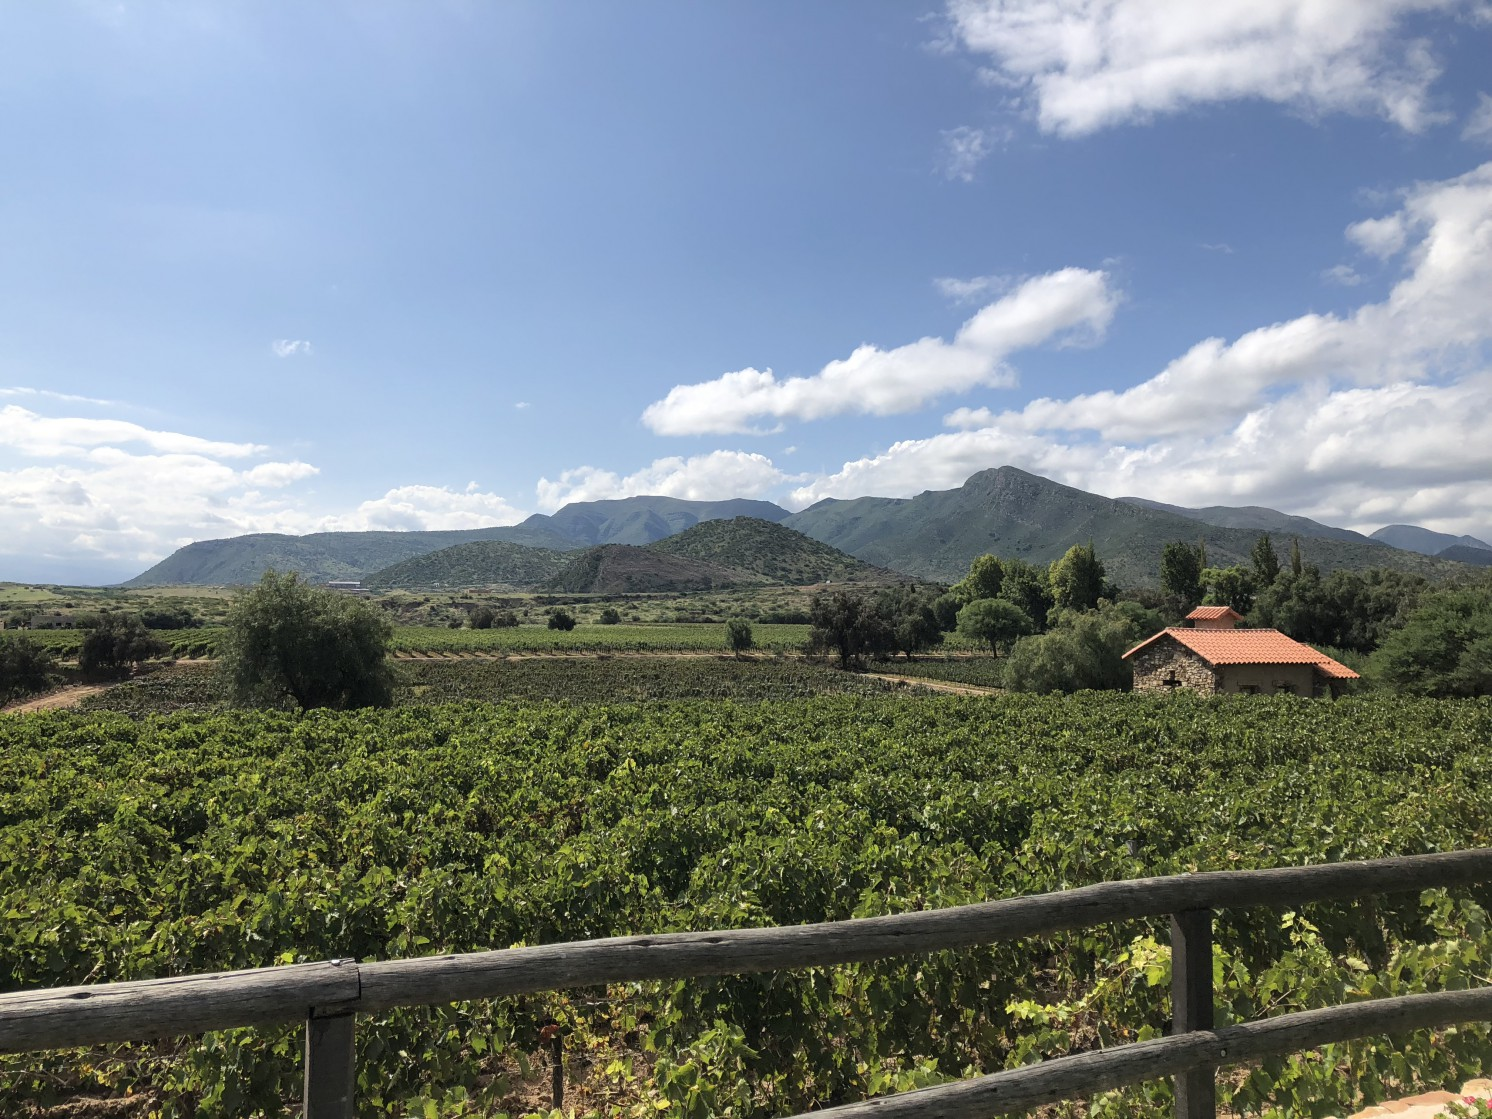 Tannat grows here at one of the vineyards of Bodega Aranjuez, located in Tarija, Bolivia. Tannat is well adapted to the high UV exposure found at 2,000 meters above sea level (6,500ft).